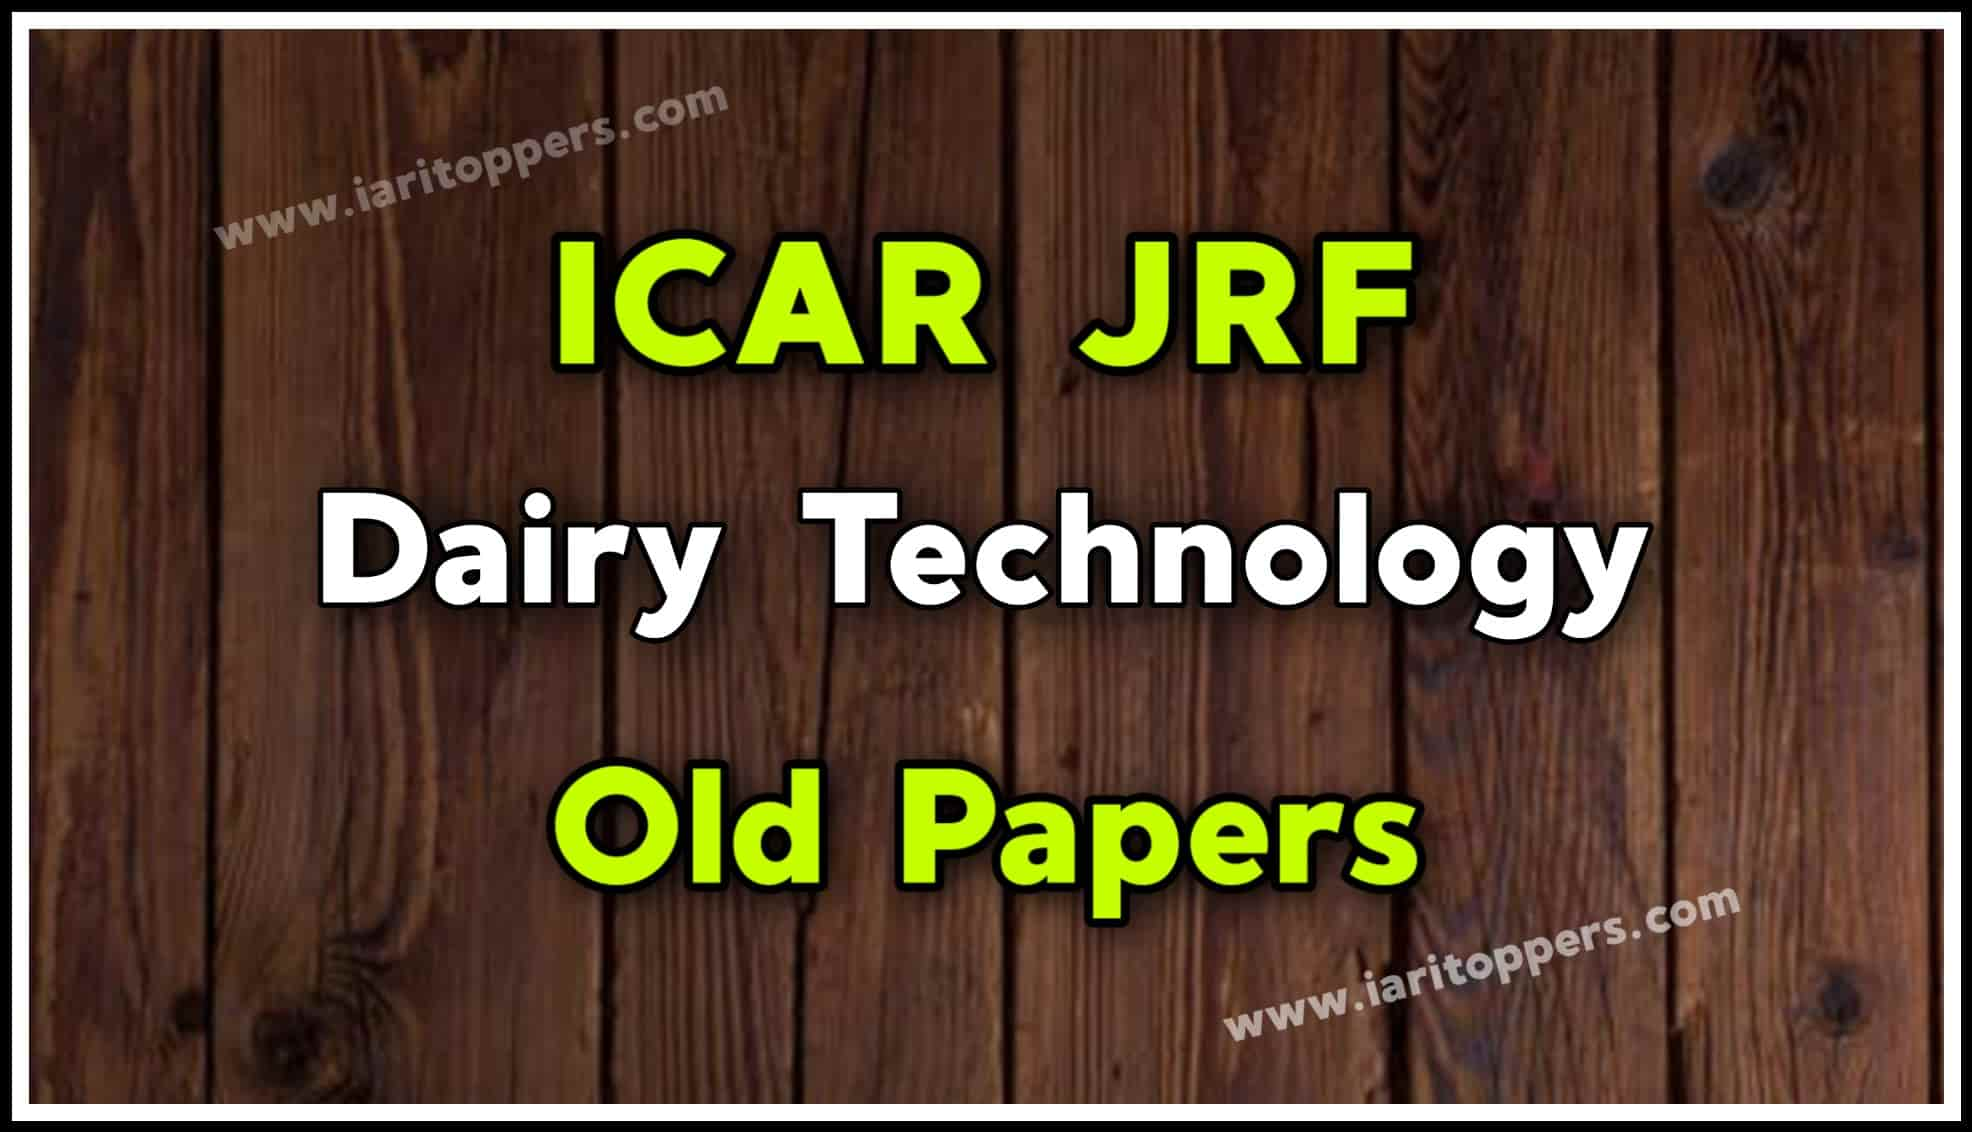 ICAR JRF Dairy Technology Old Papers PDF Download